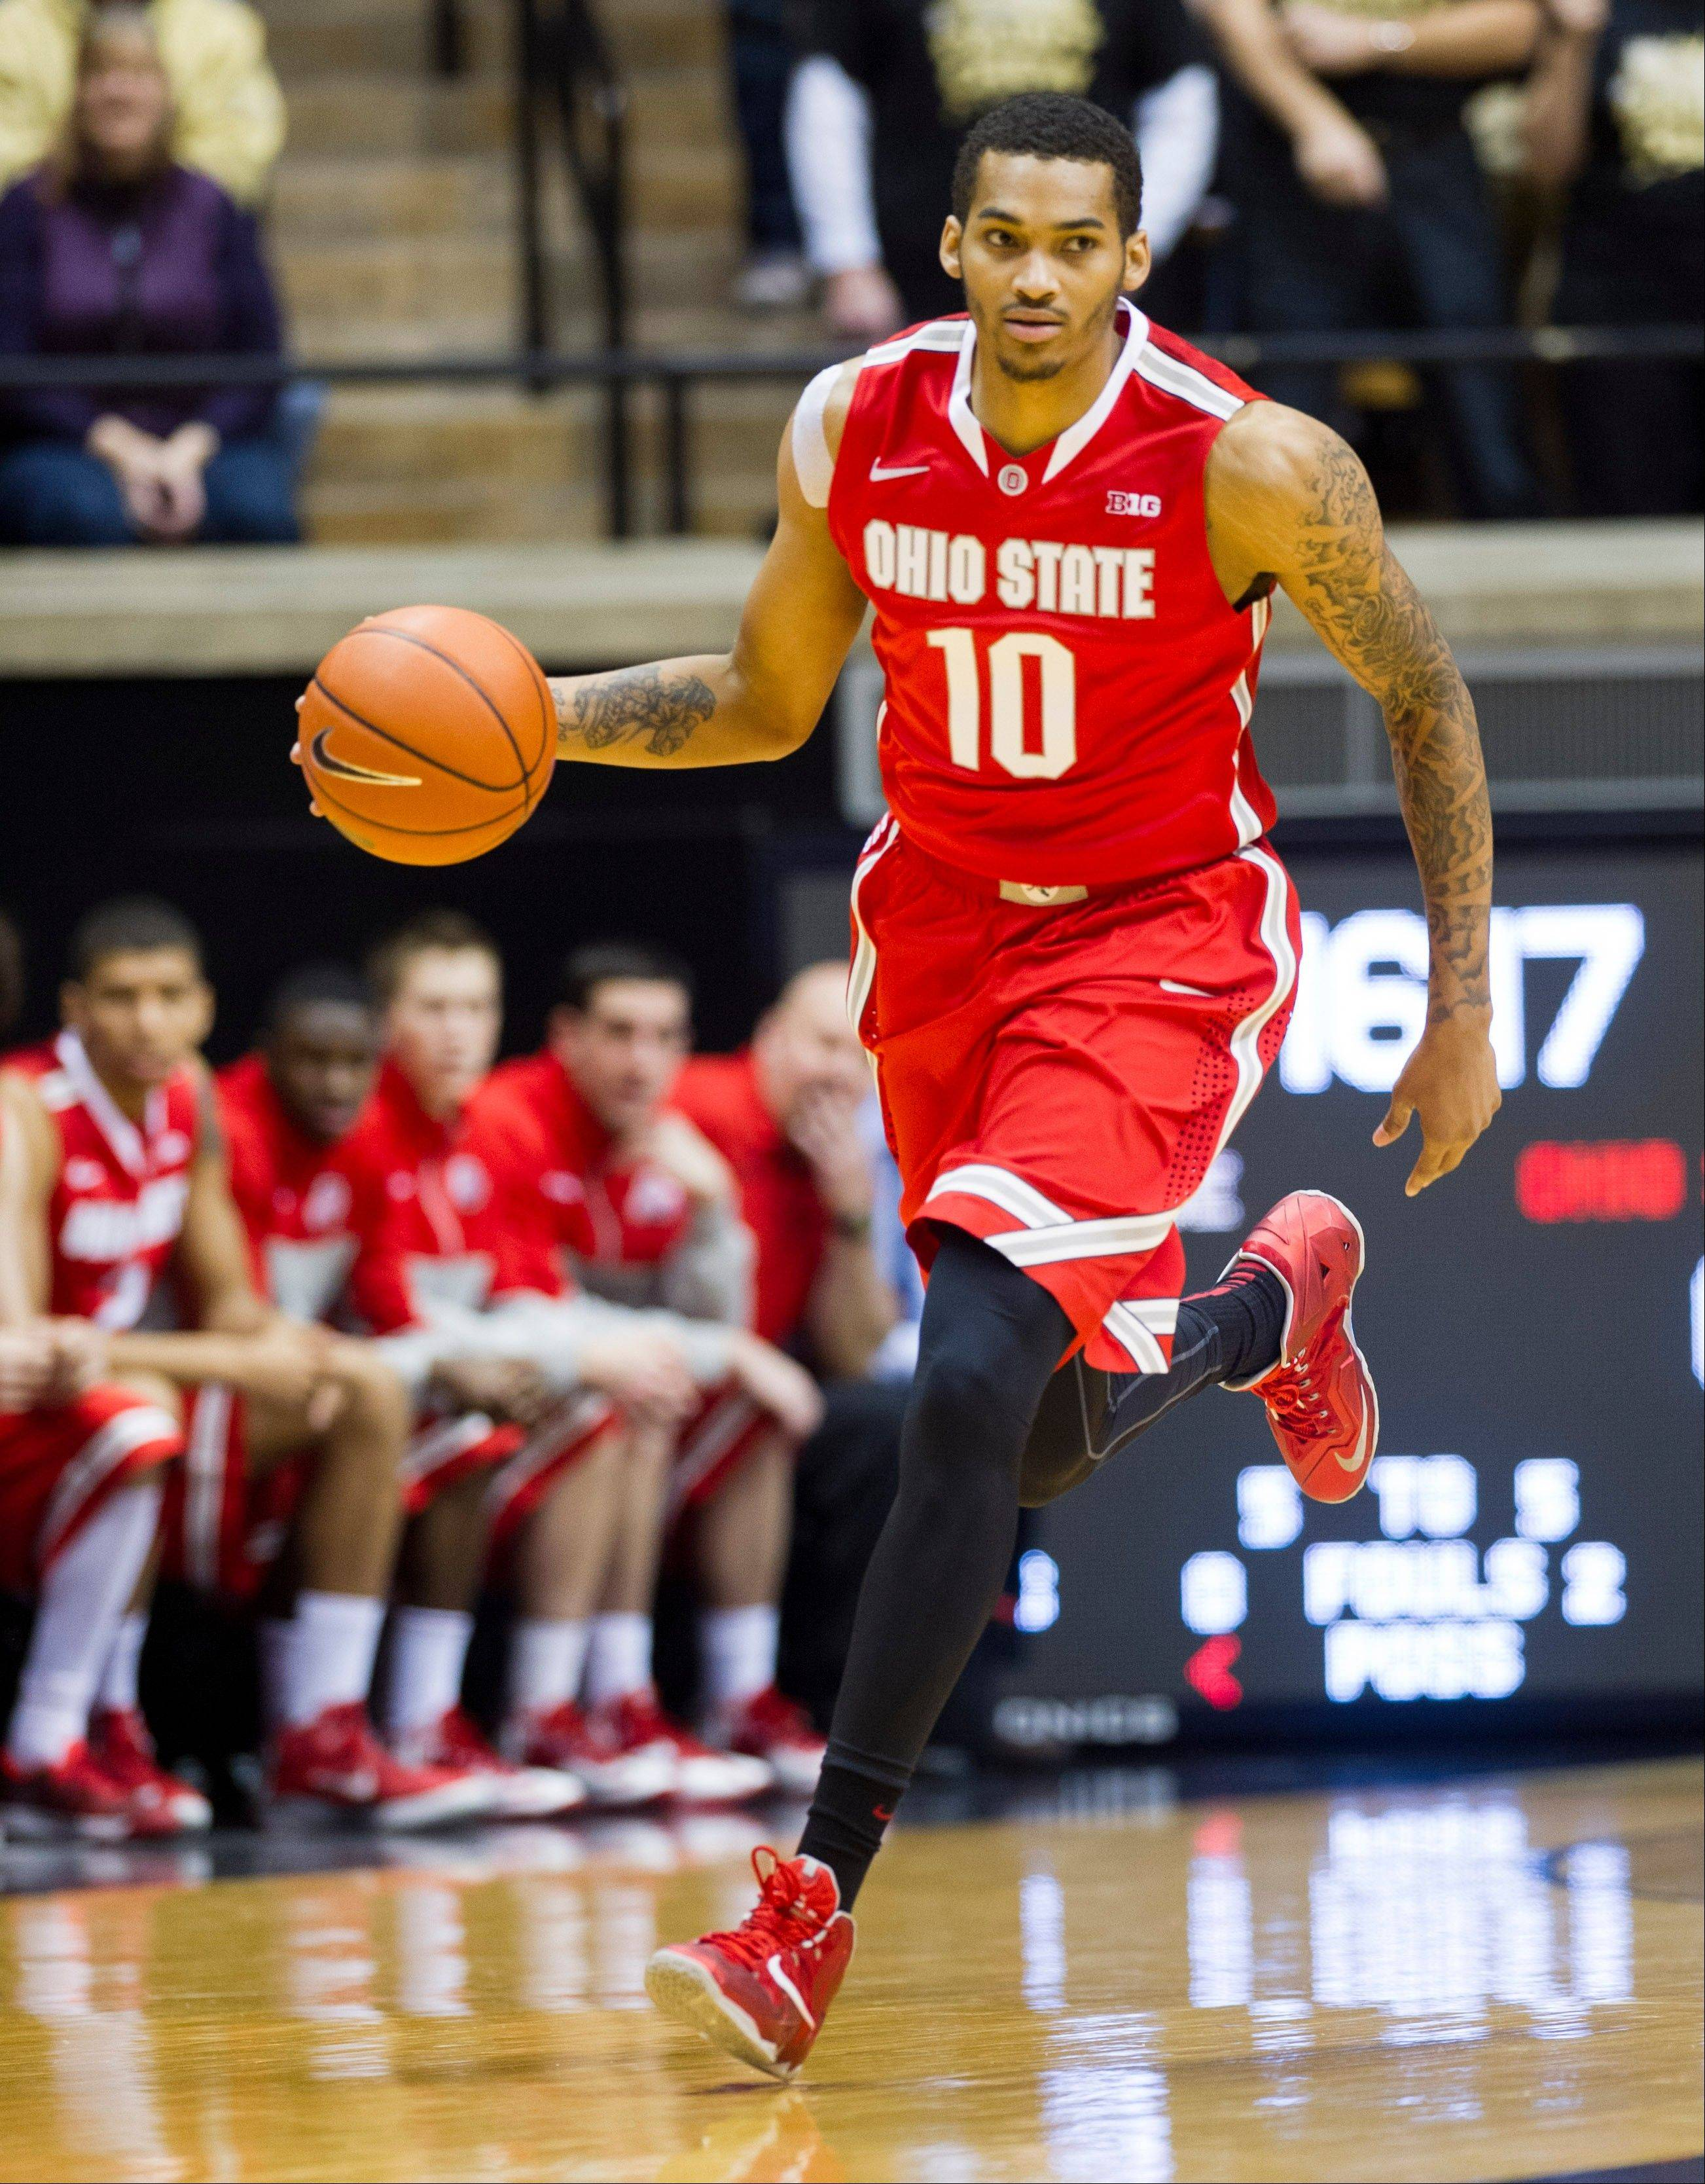 Ohio State's LaQuinton Ross brings the ball up court in the first half of Tuesday's game against Purdue in West Lafayette, Ind.